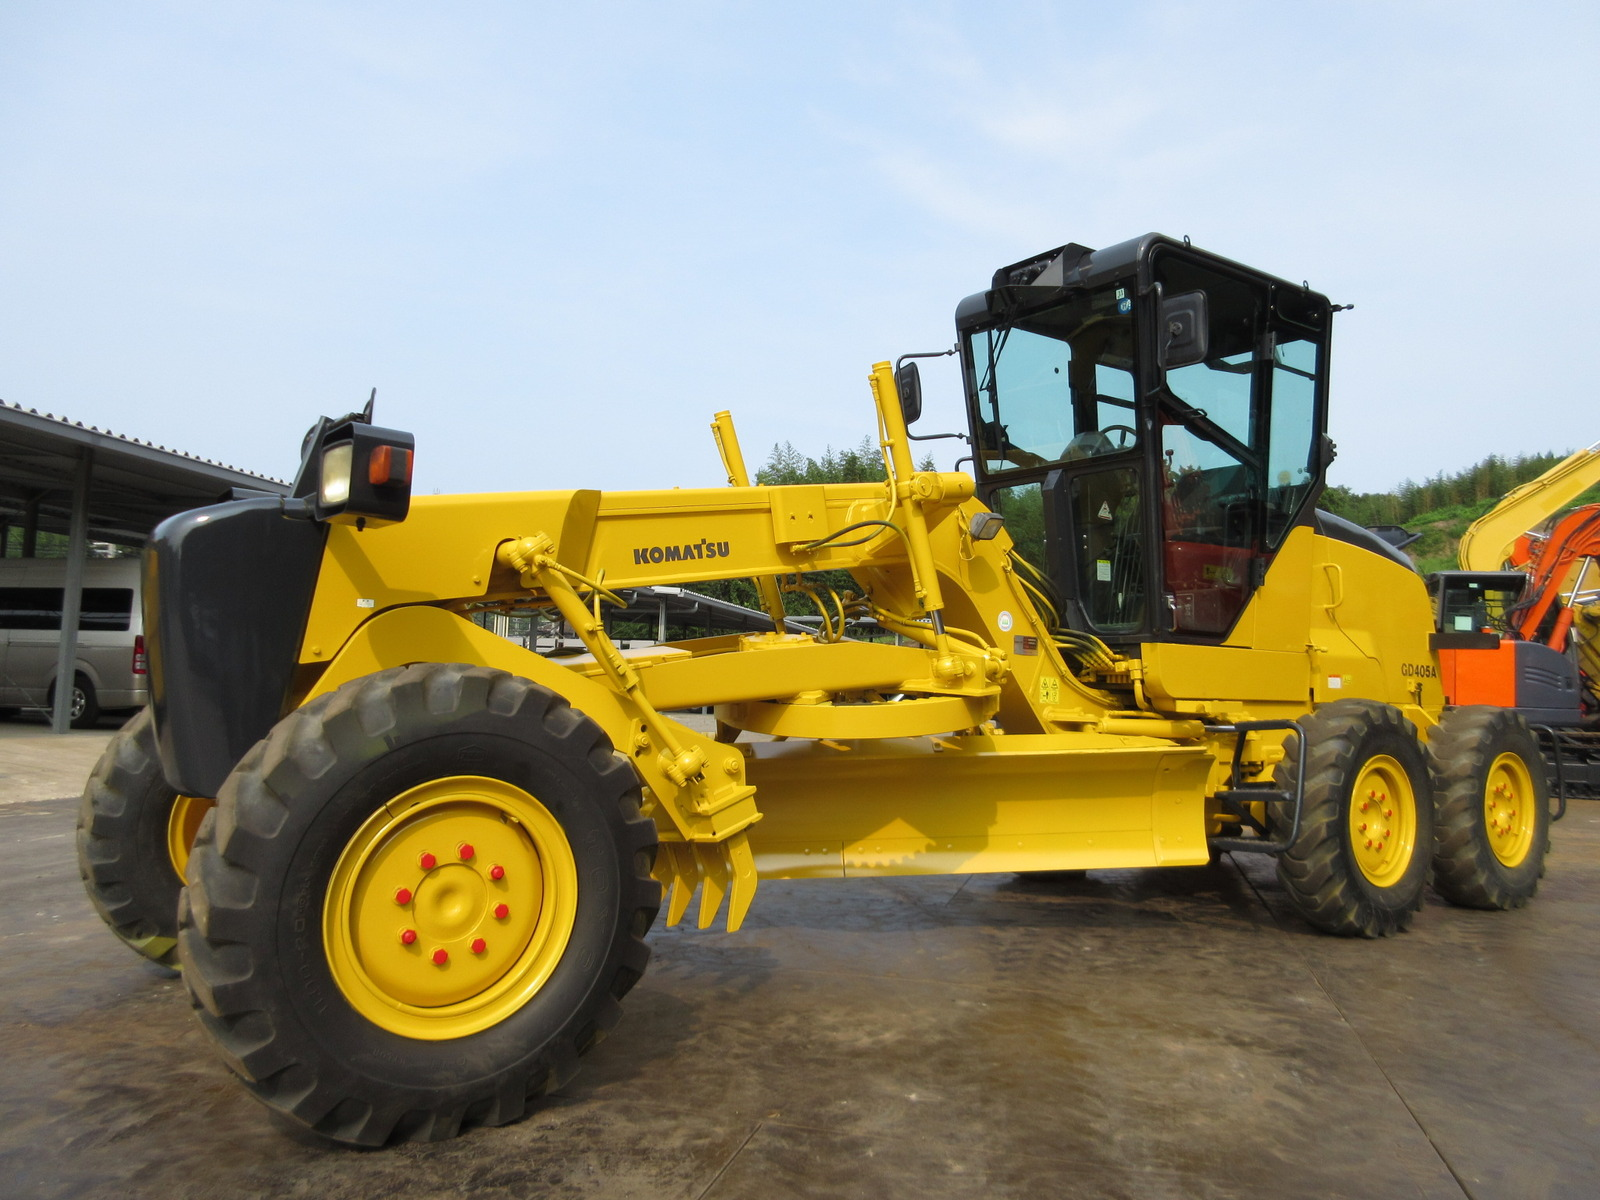 Used Construction Machine used Grader KOMATSU GD405A-3 Photos